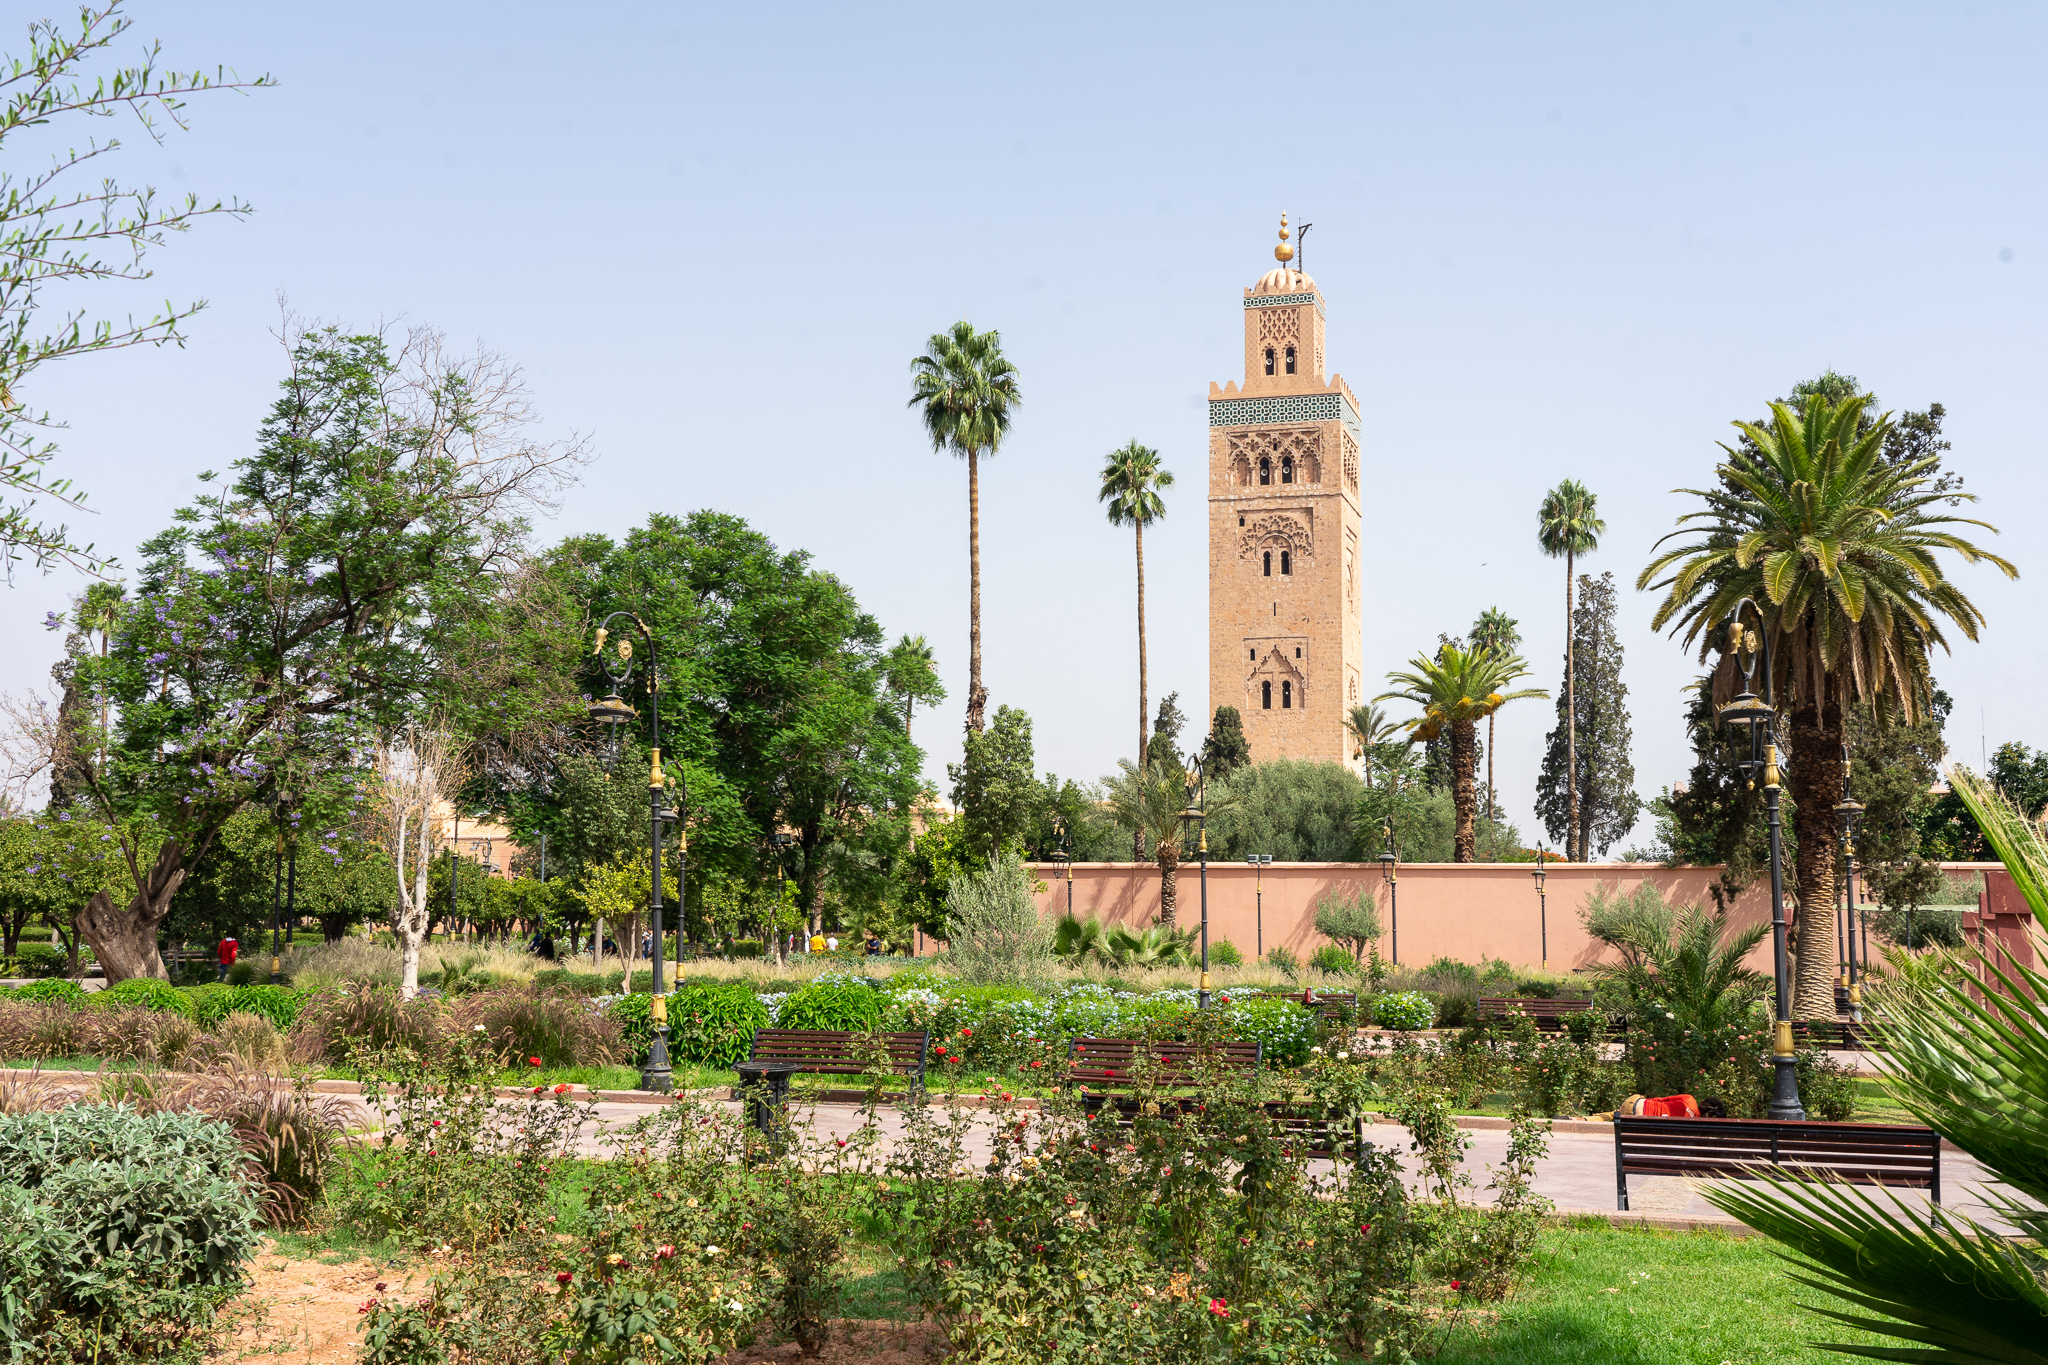 Marrakesh and Essaouira: From the Desert to the Sea in Morocco